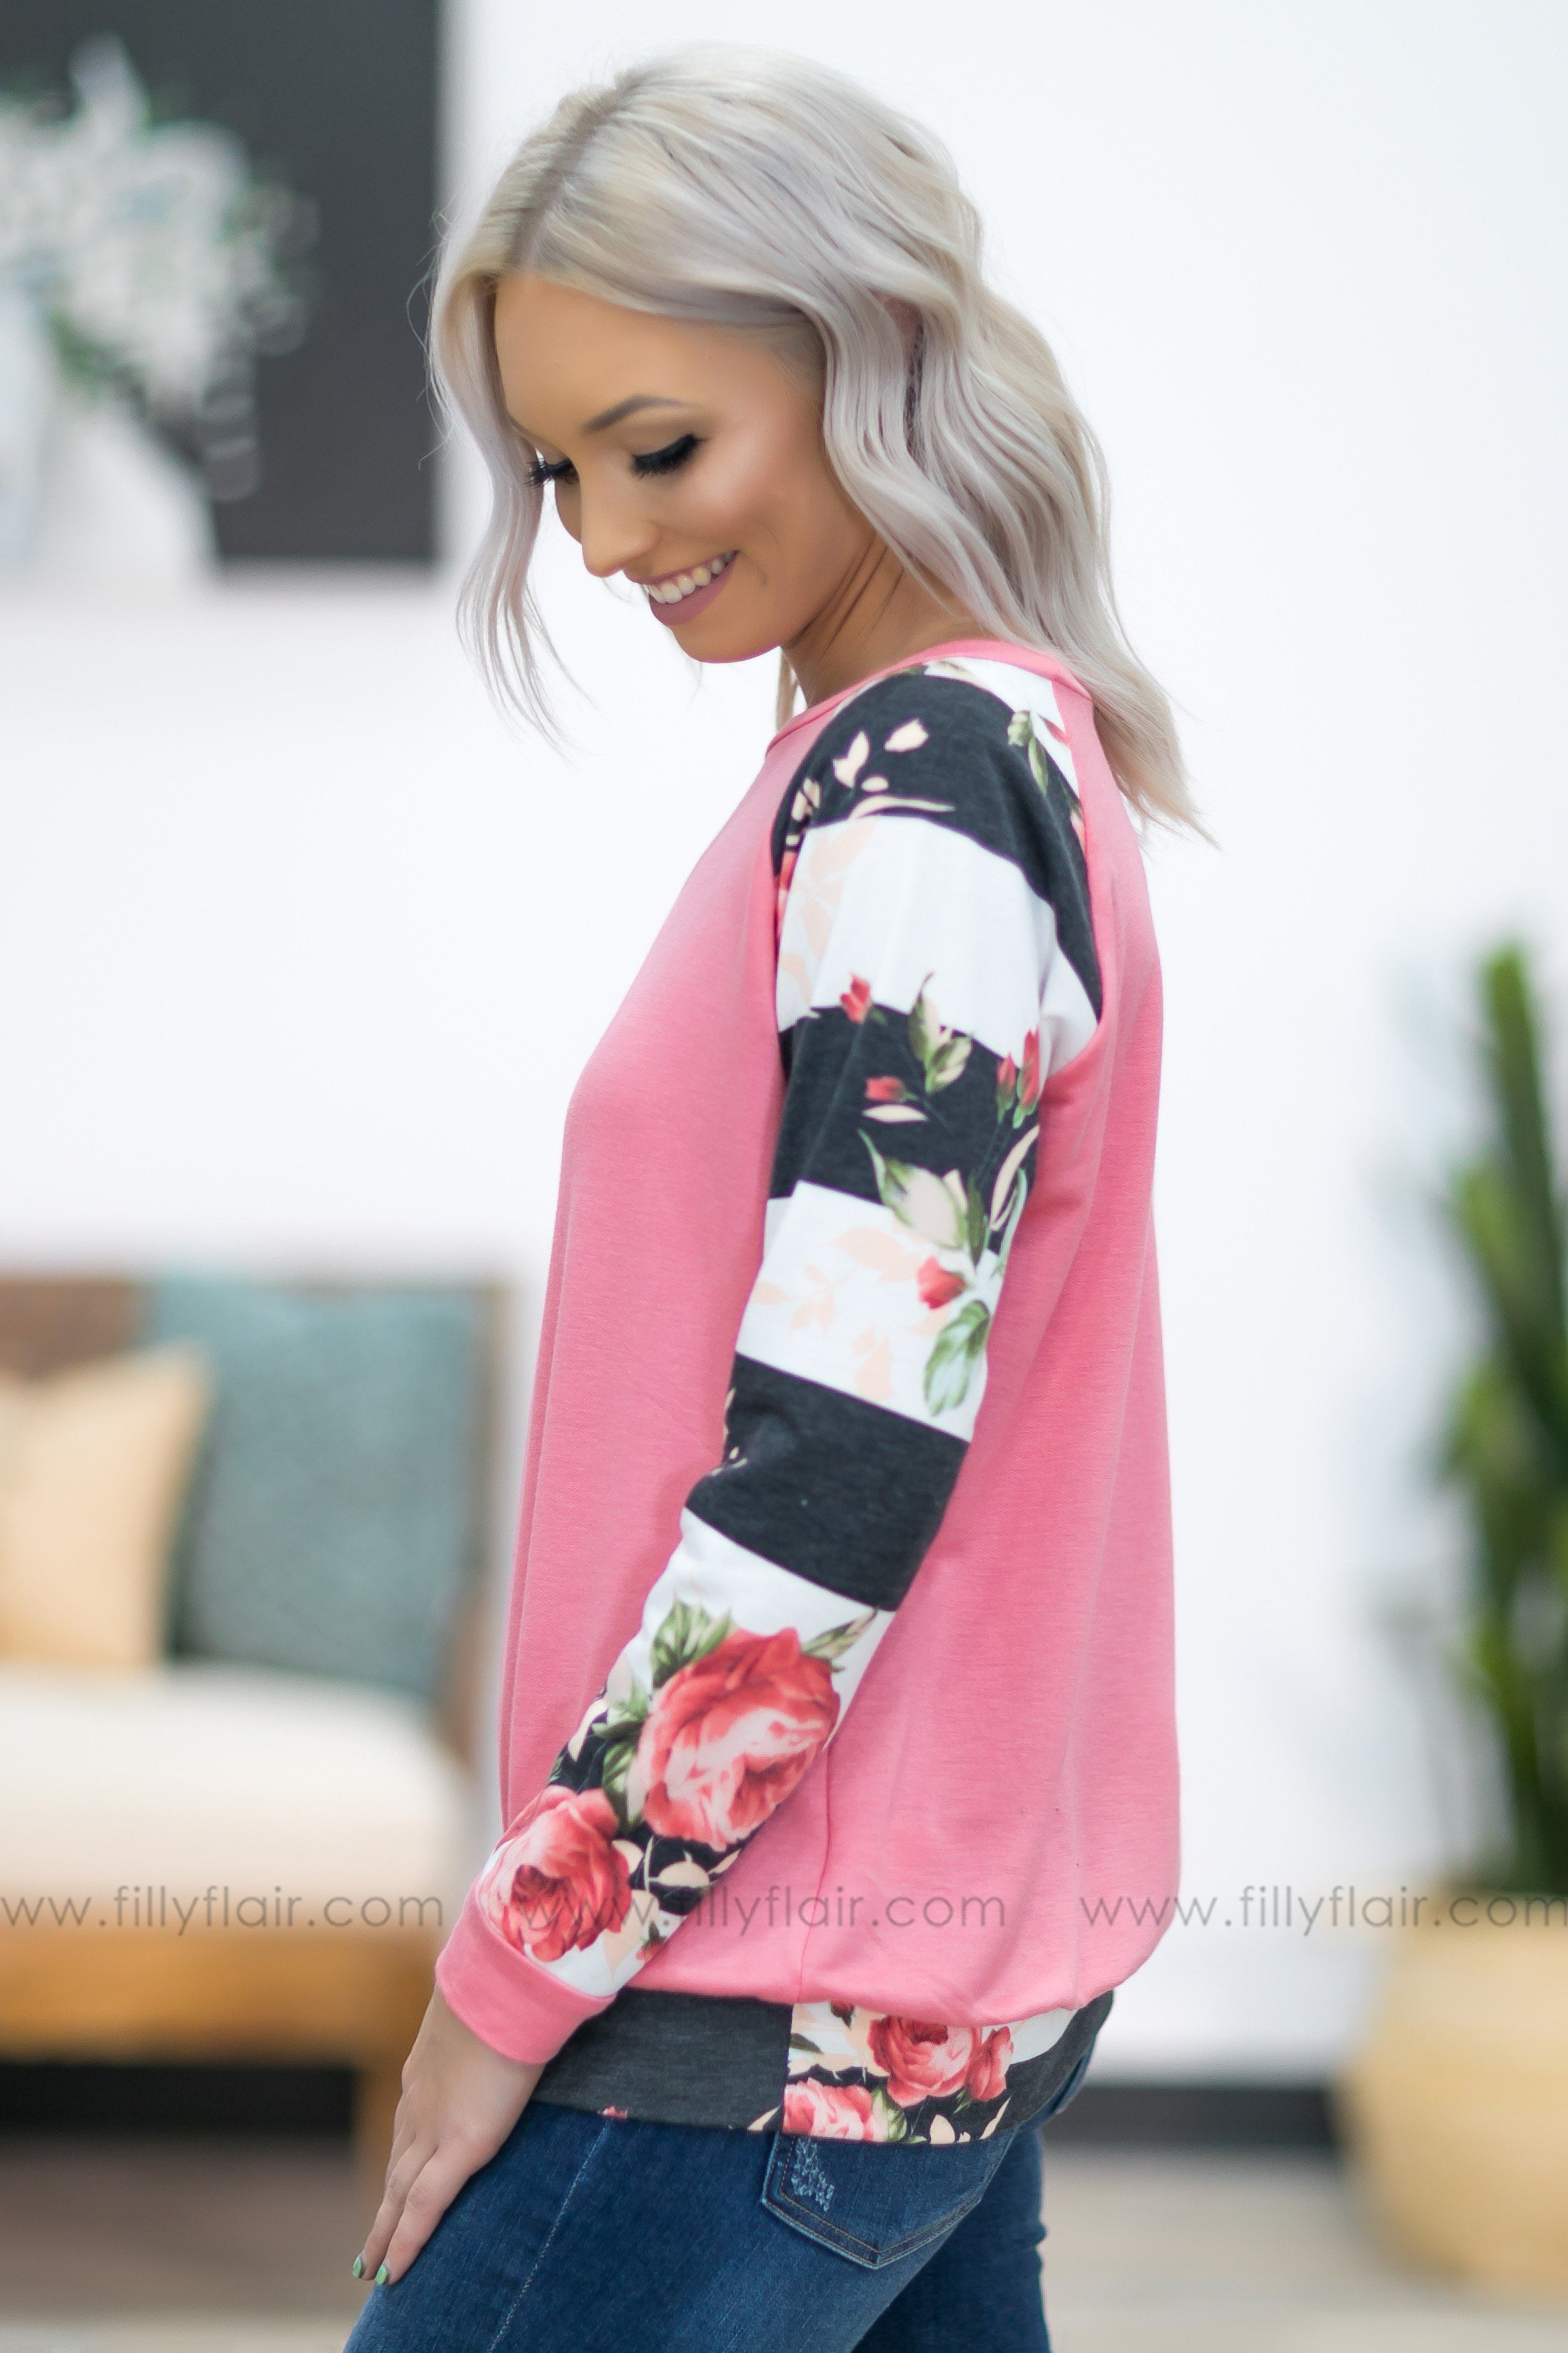 Say It To Me Striped Floral Long Sleeve Top in Pink - Filly Flair